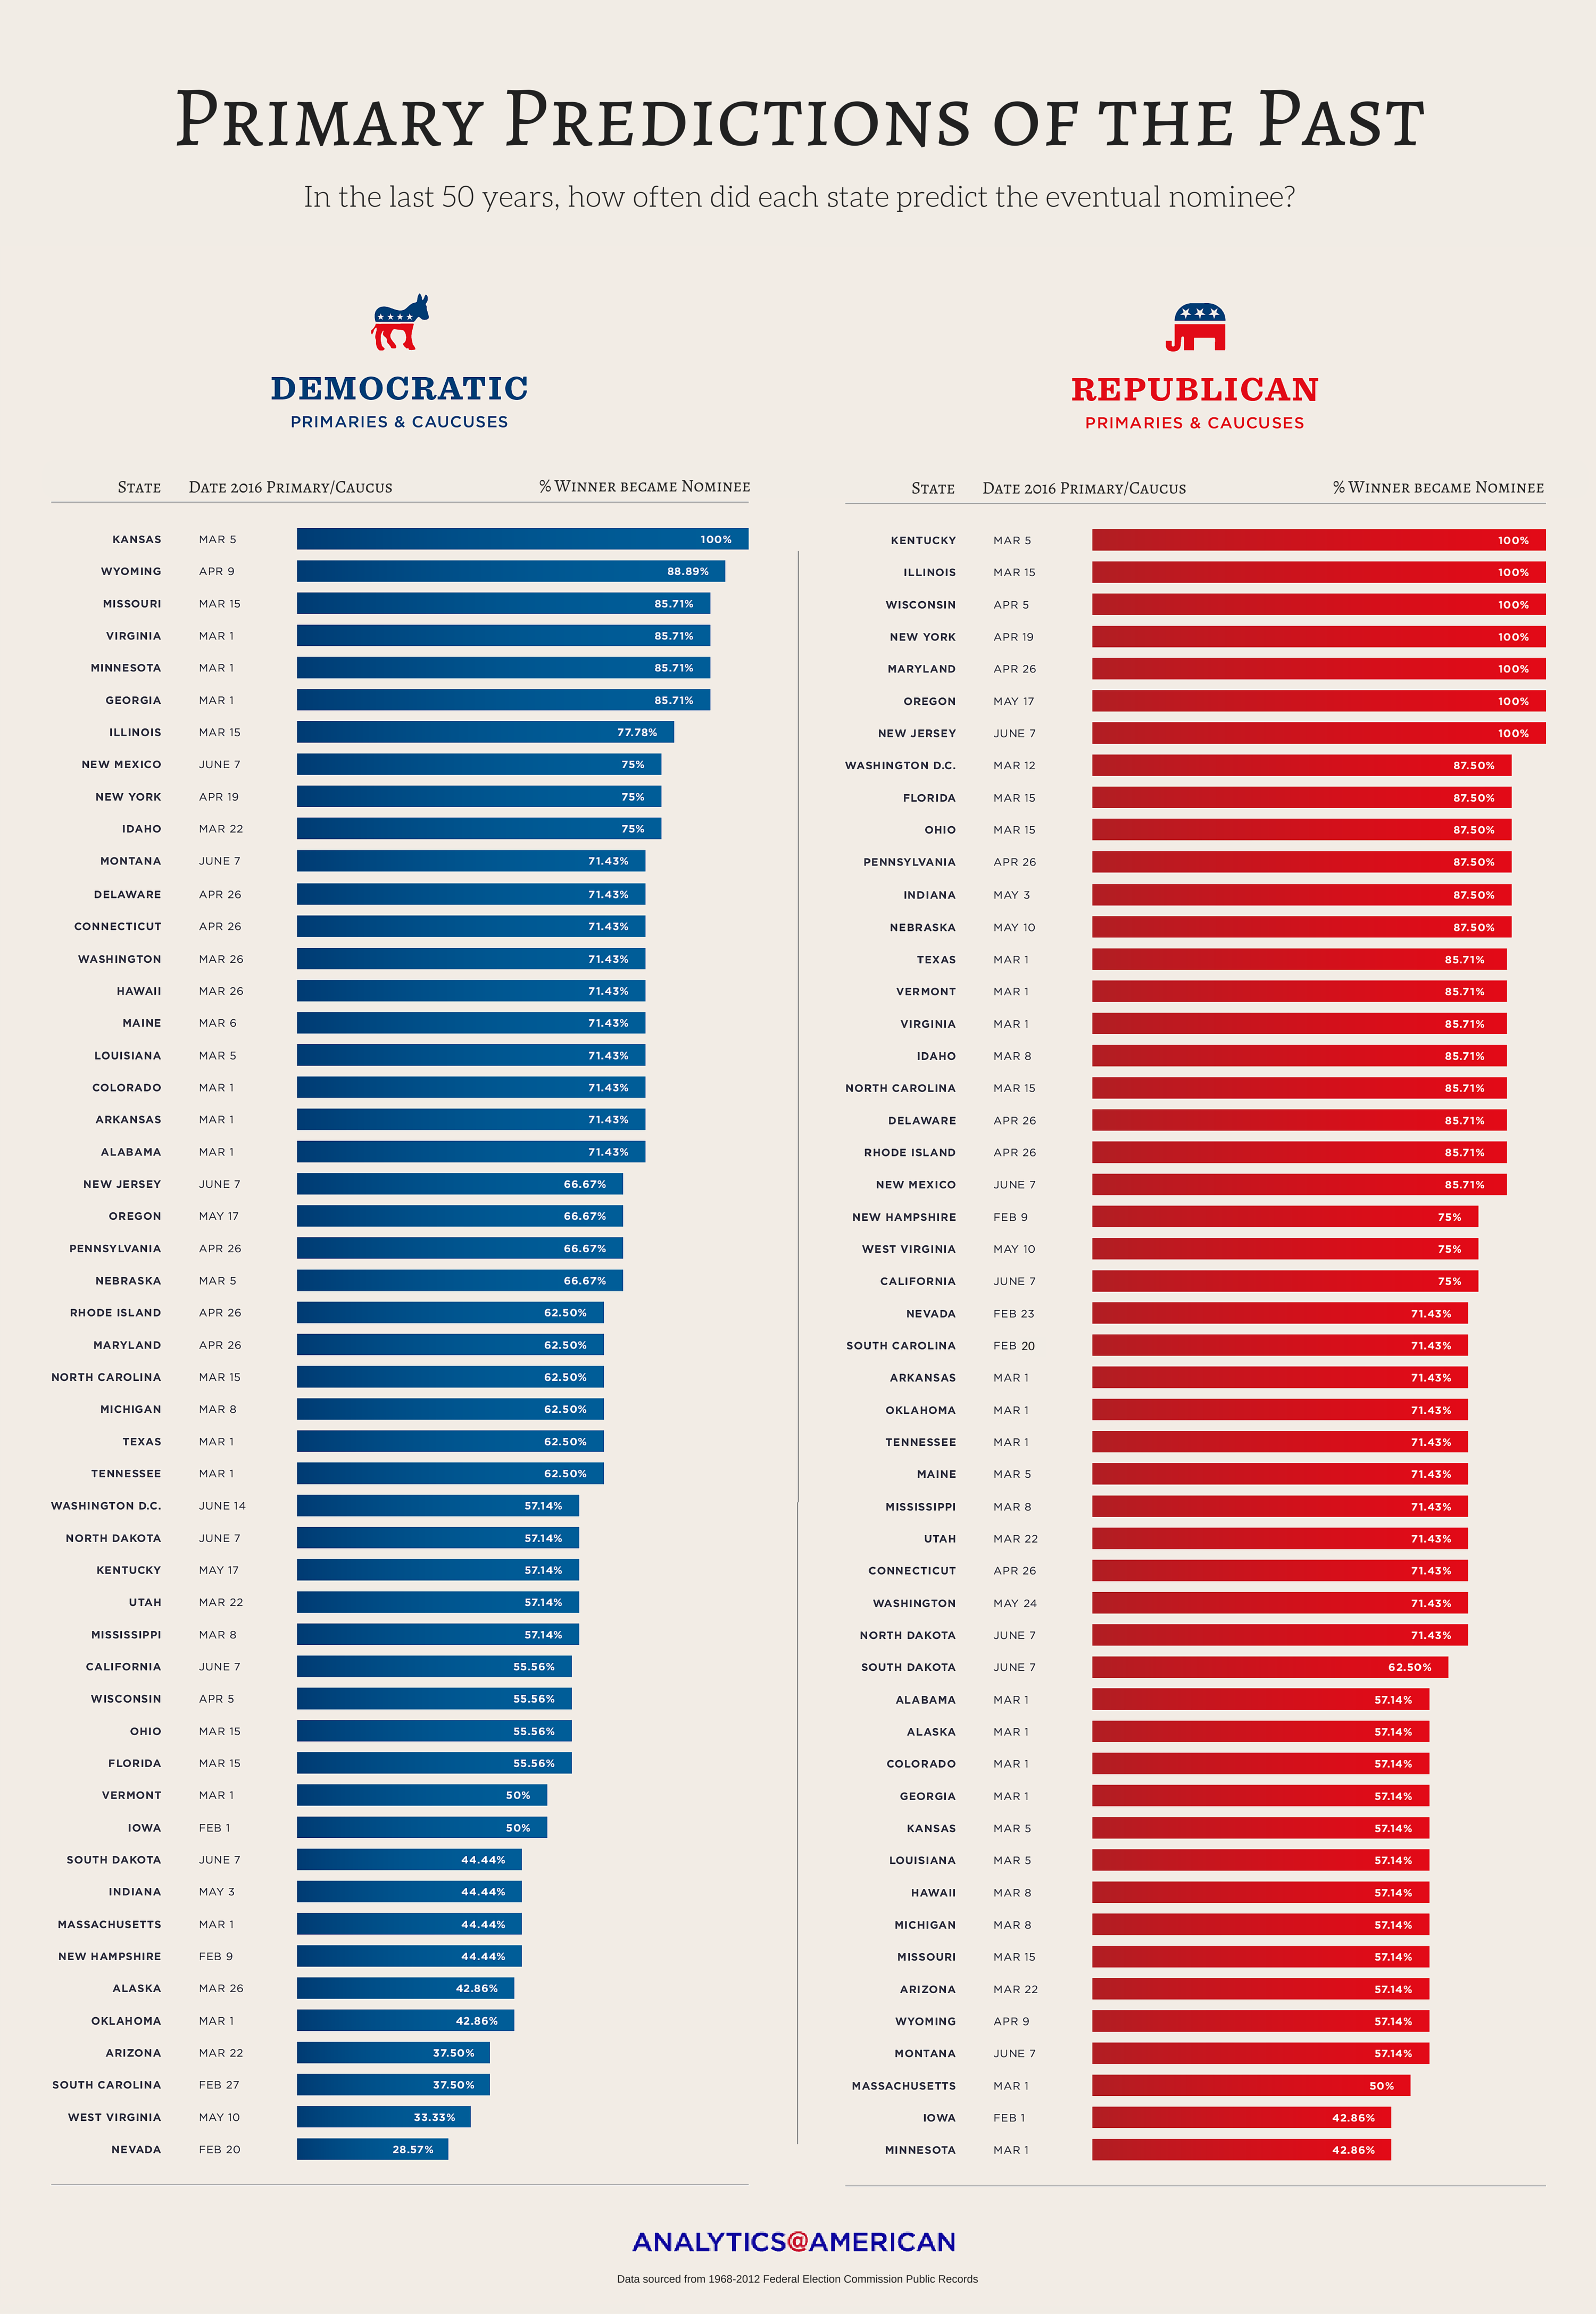 primary predictions of the past infographic.